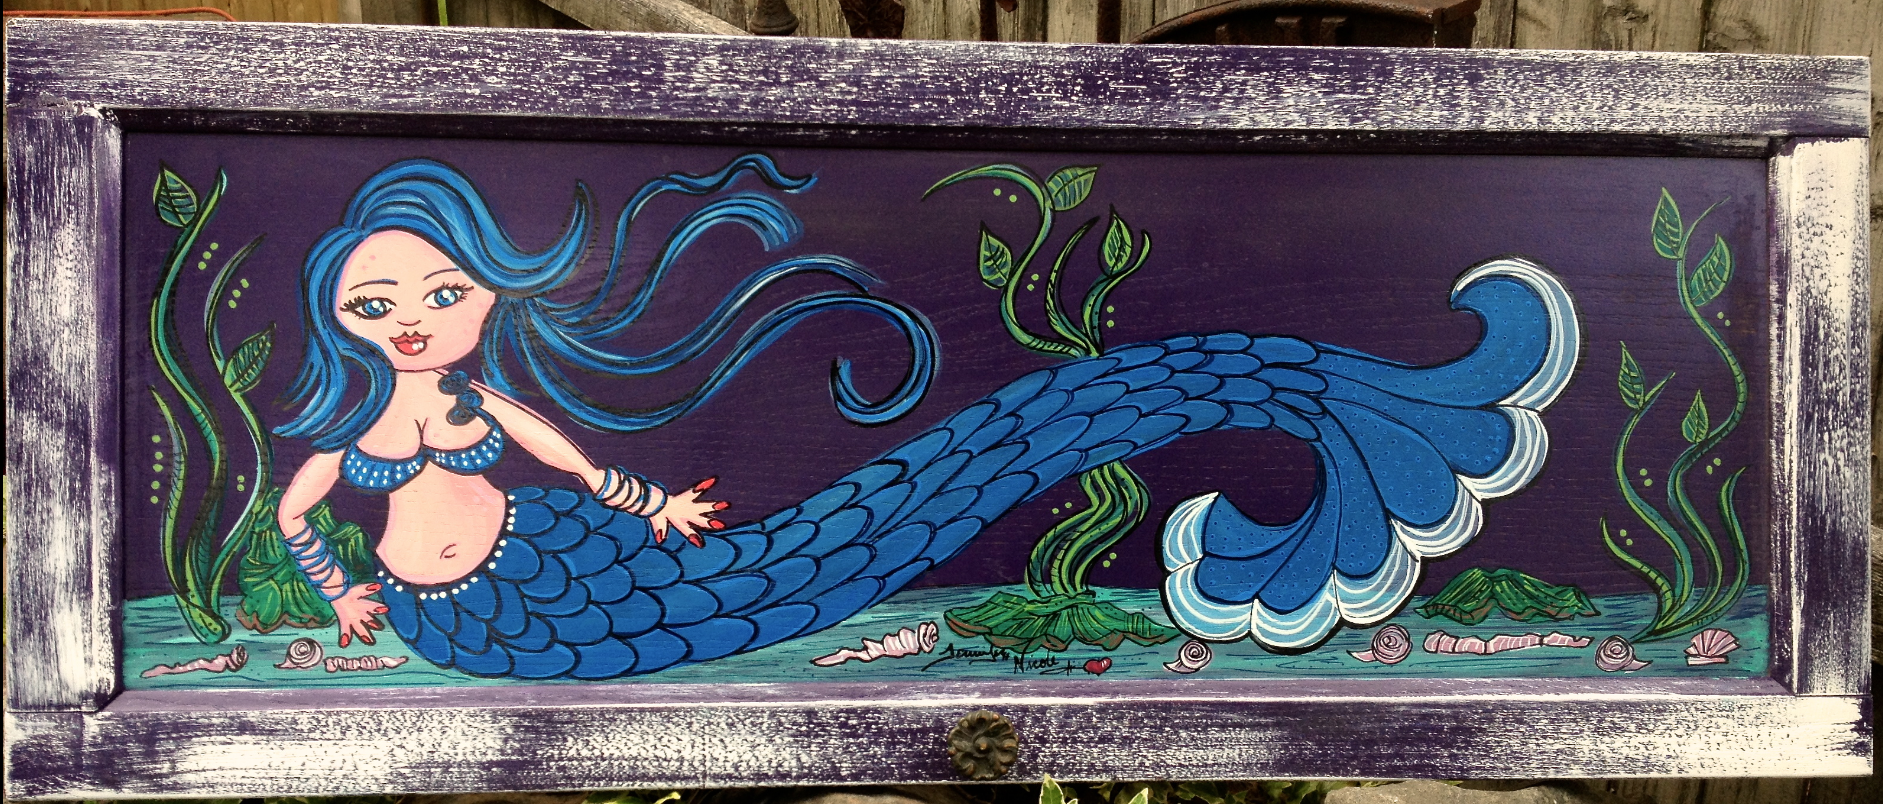 5-22-13 Mermaid Door